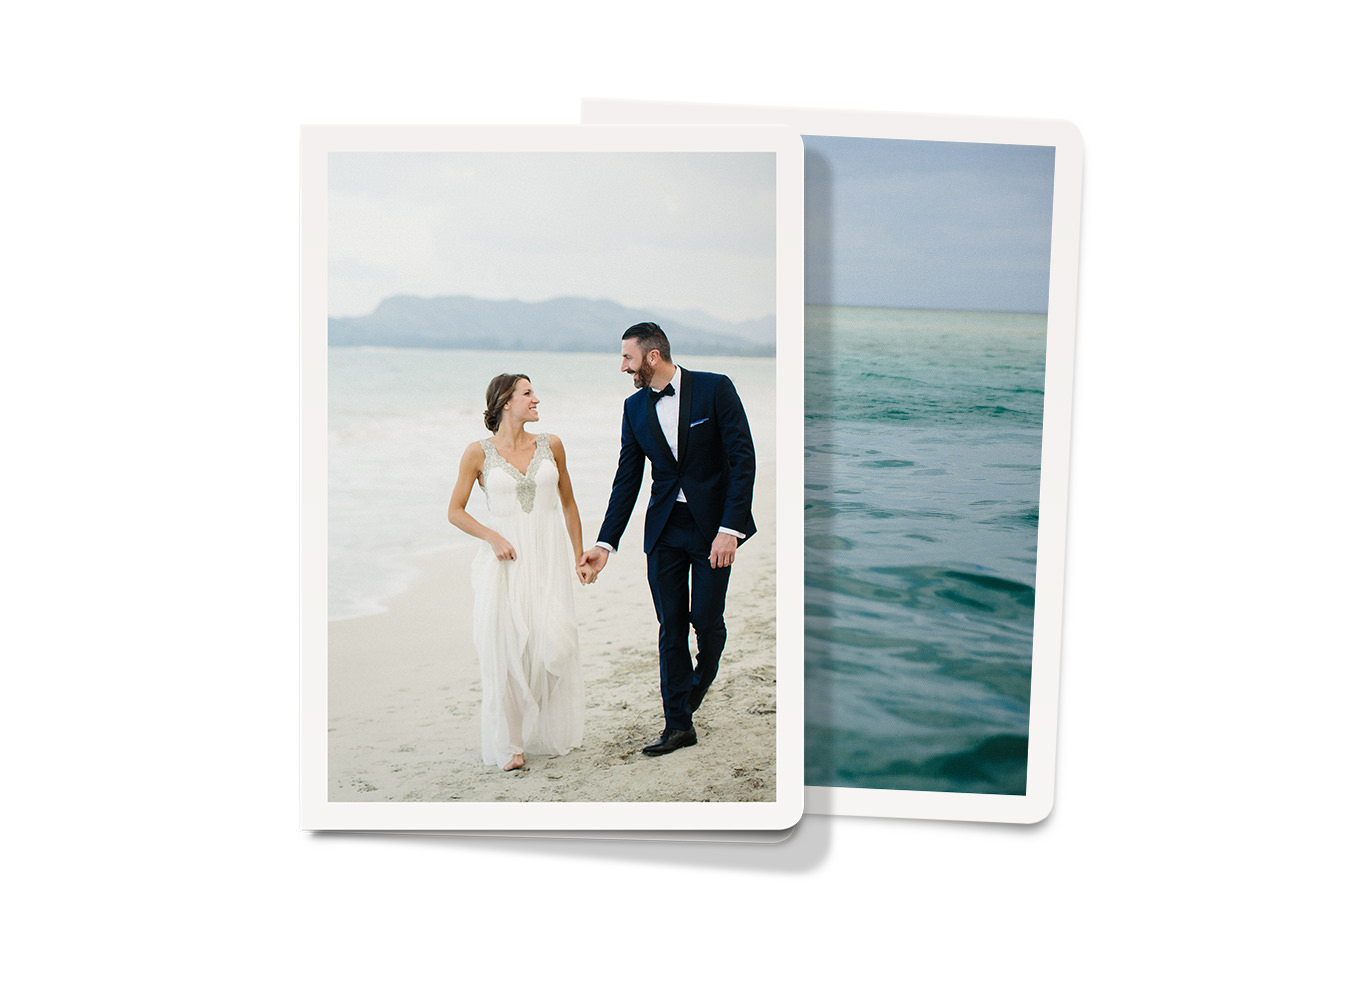 Two portrait greeting cards. One with a newlywed couple on the beach and one with a scenic ocean photograph.